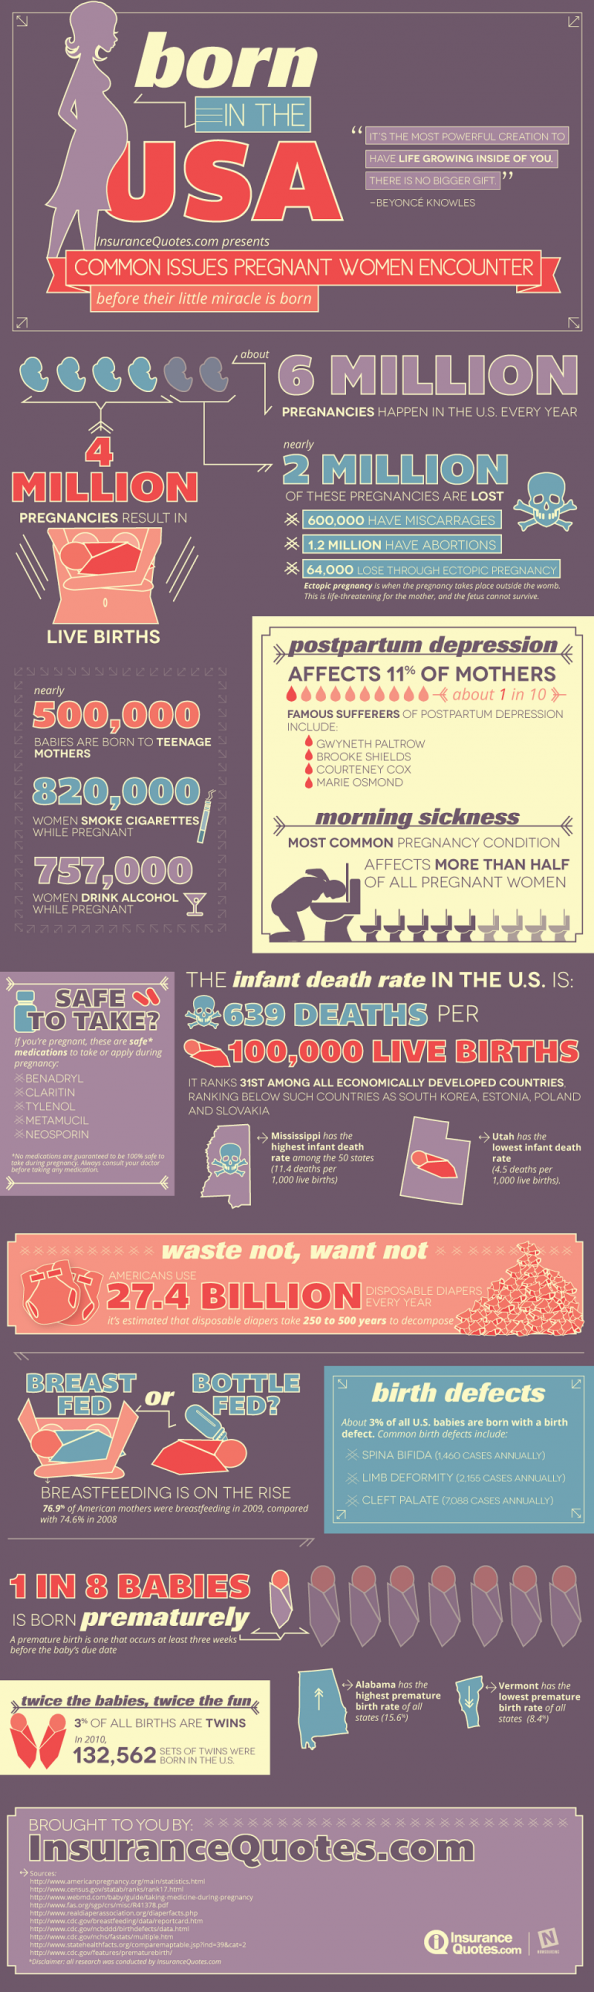 Born in the USA Infographic